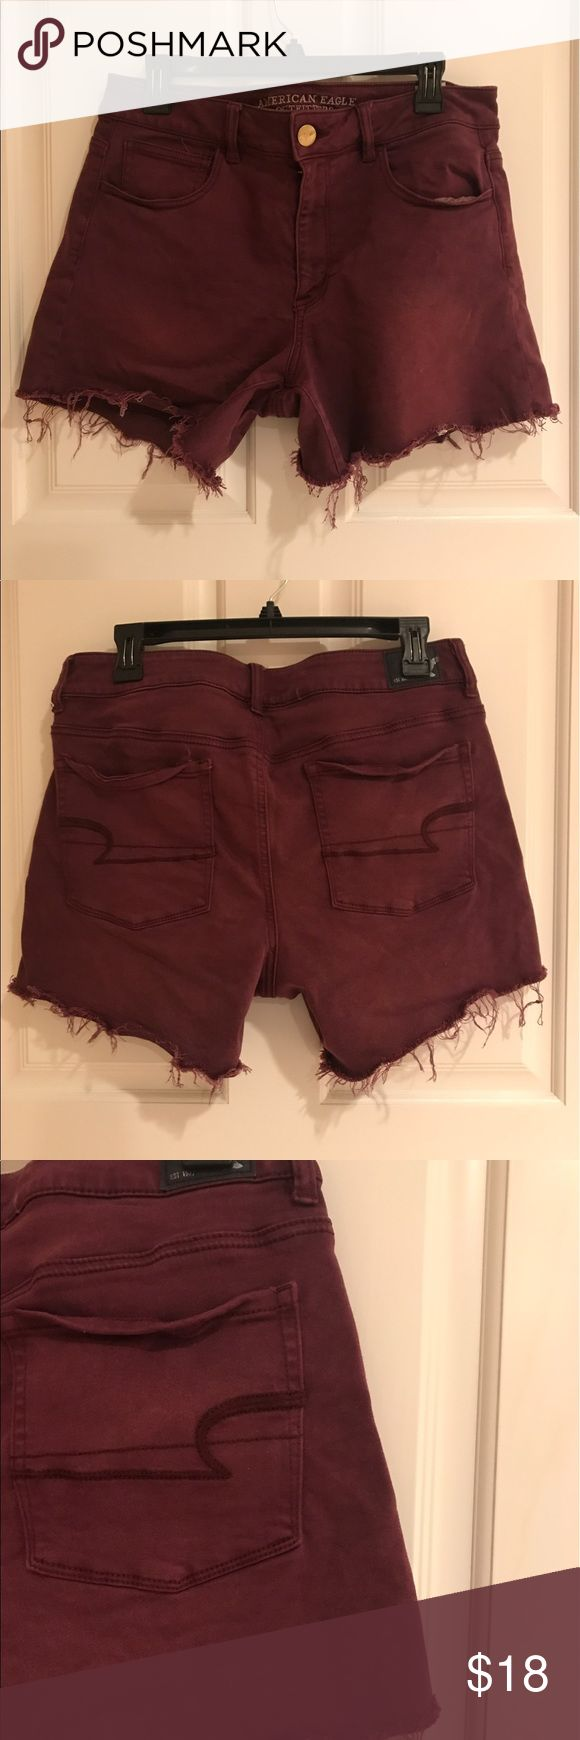 Super stretch maroon shorts These shorts are INSANELY soft! Great amount of super stretch. Very very comfy. Size 14 but can fit size 10-14 I am size 10 and these fit well. From American eagle. Wore once for a few hours. Like new. Perfect condition American Eagle Outfitters Shorts